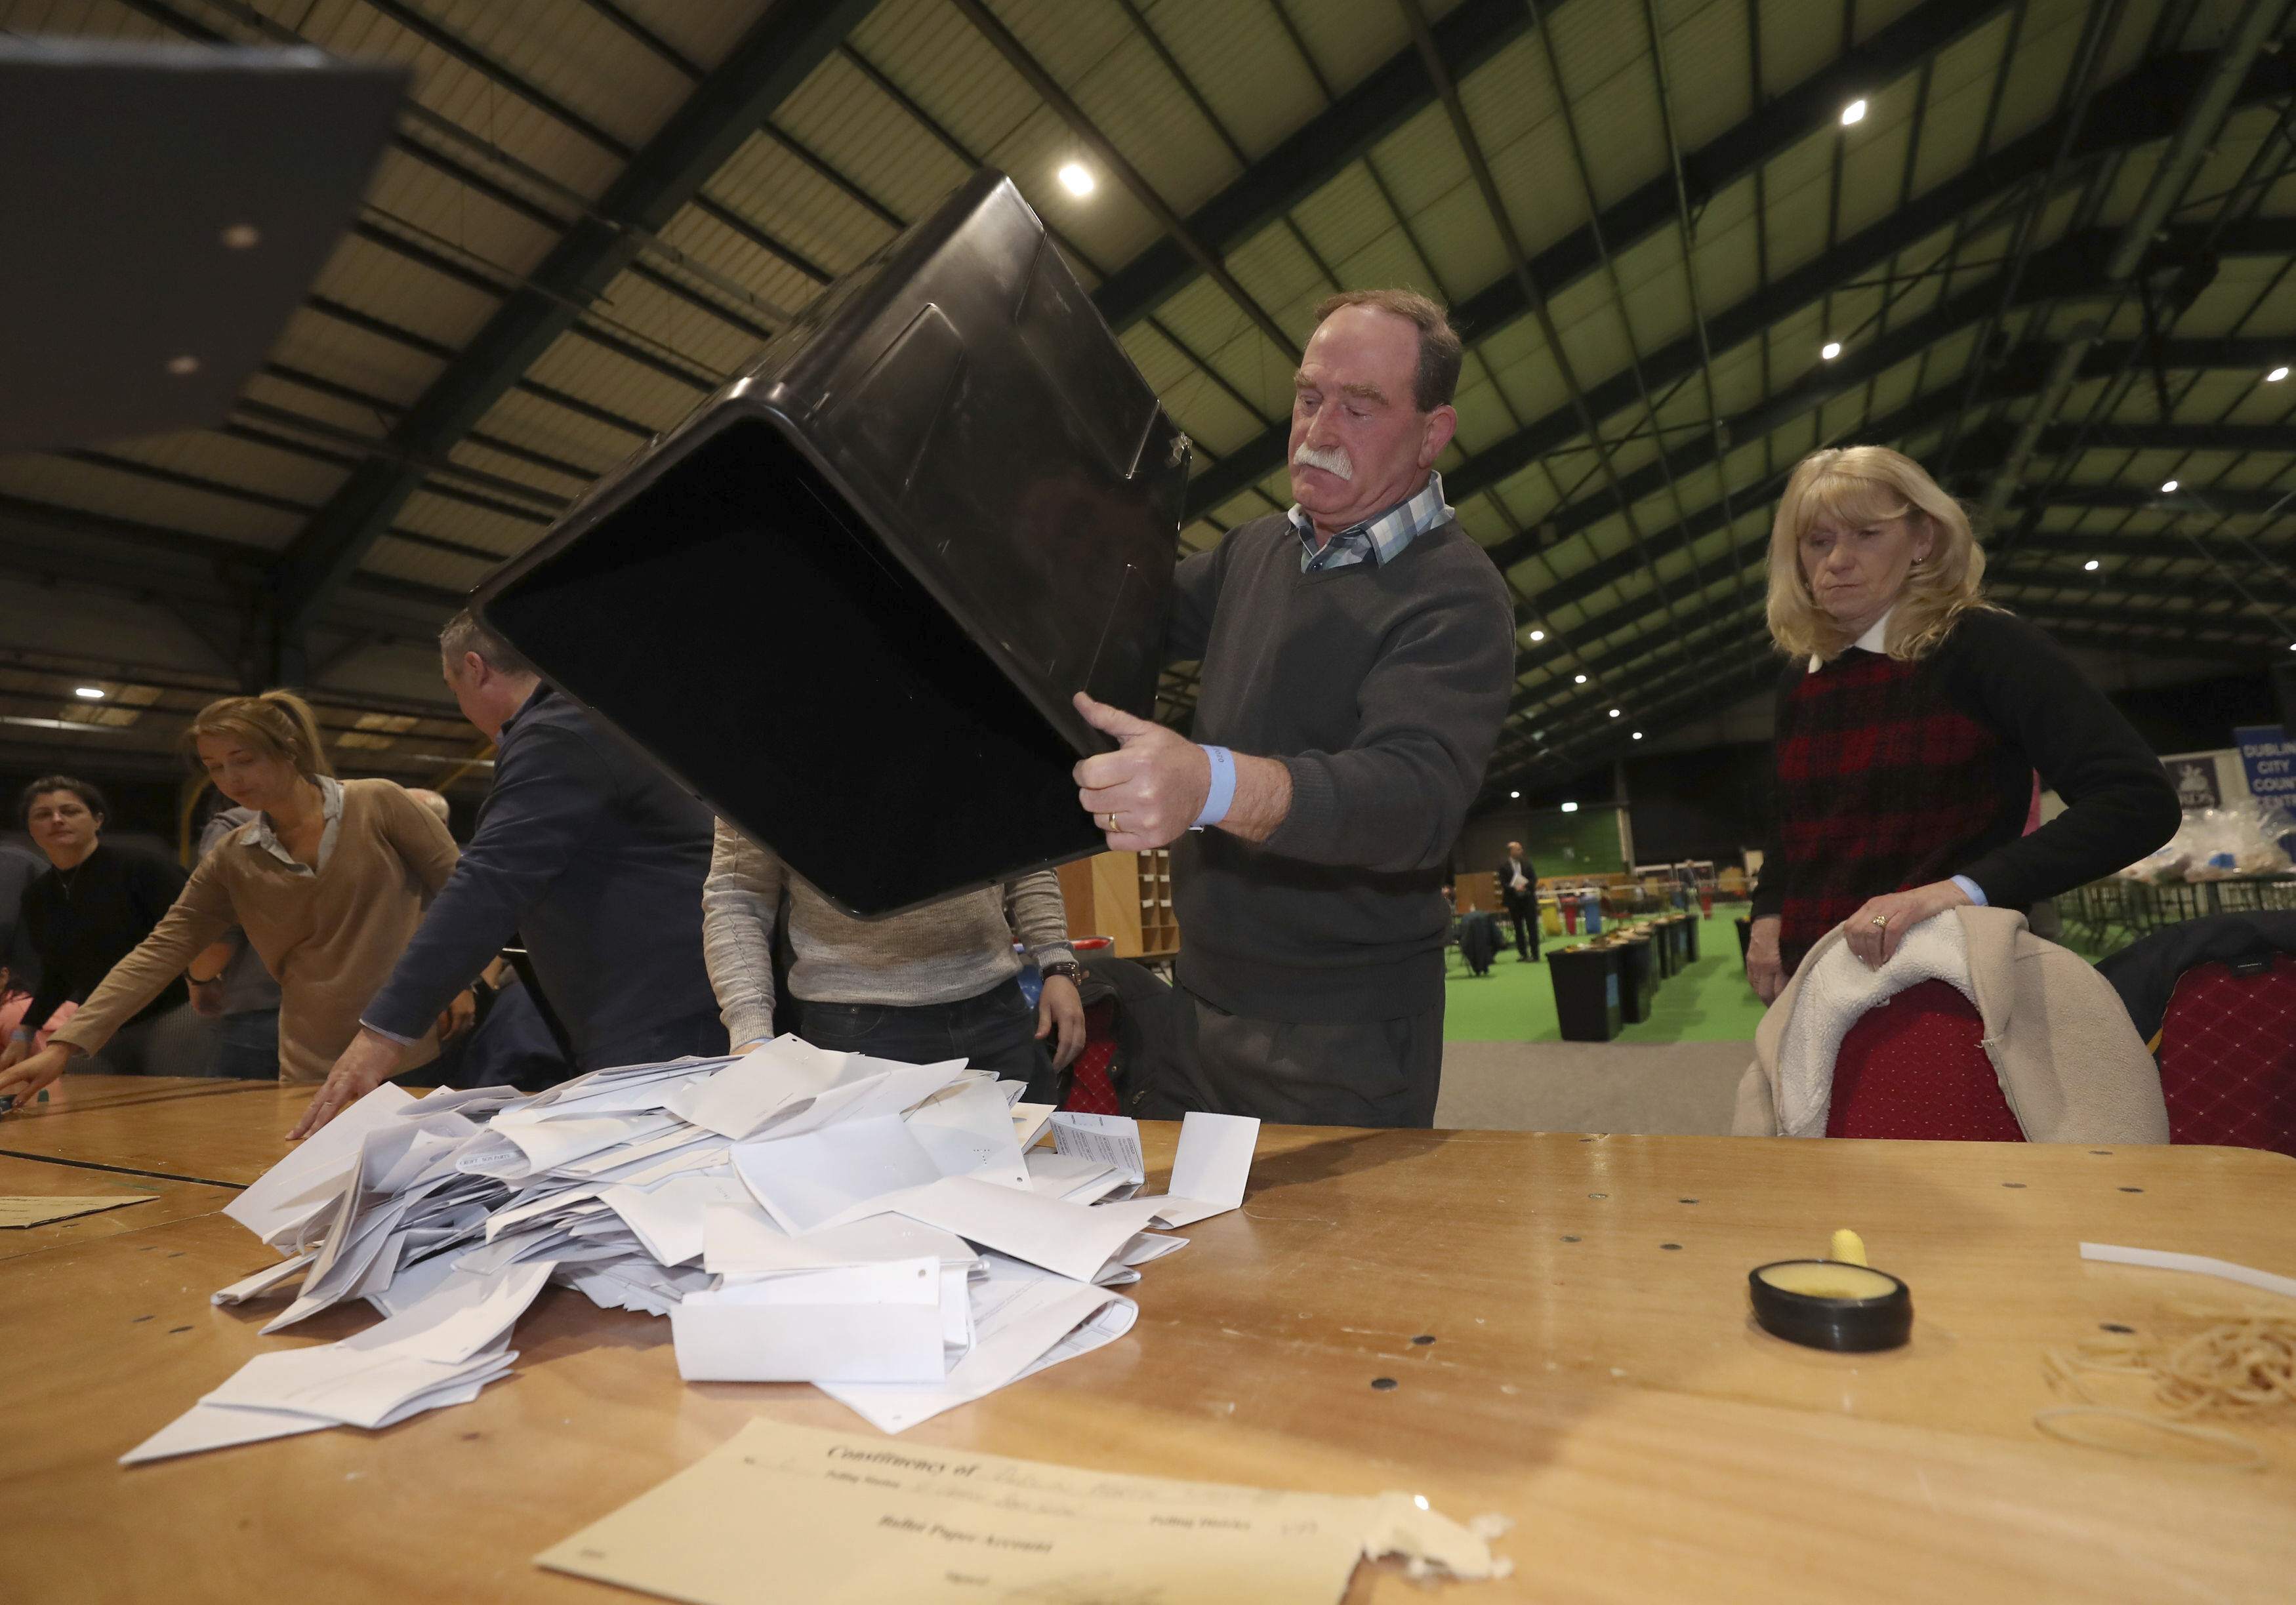 Ballot boxes are opened at the start of the Irish General Election count in Dublin, on Feb. 9, 2020.